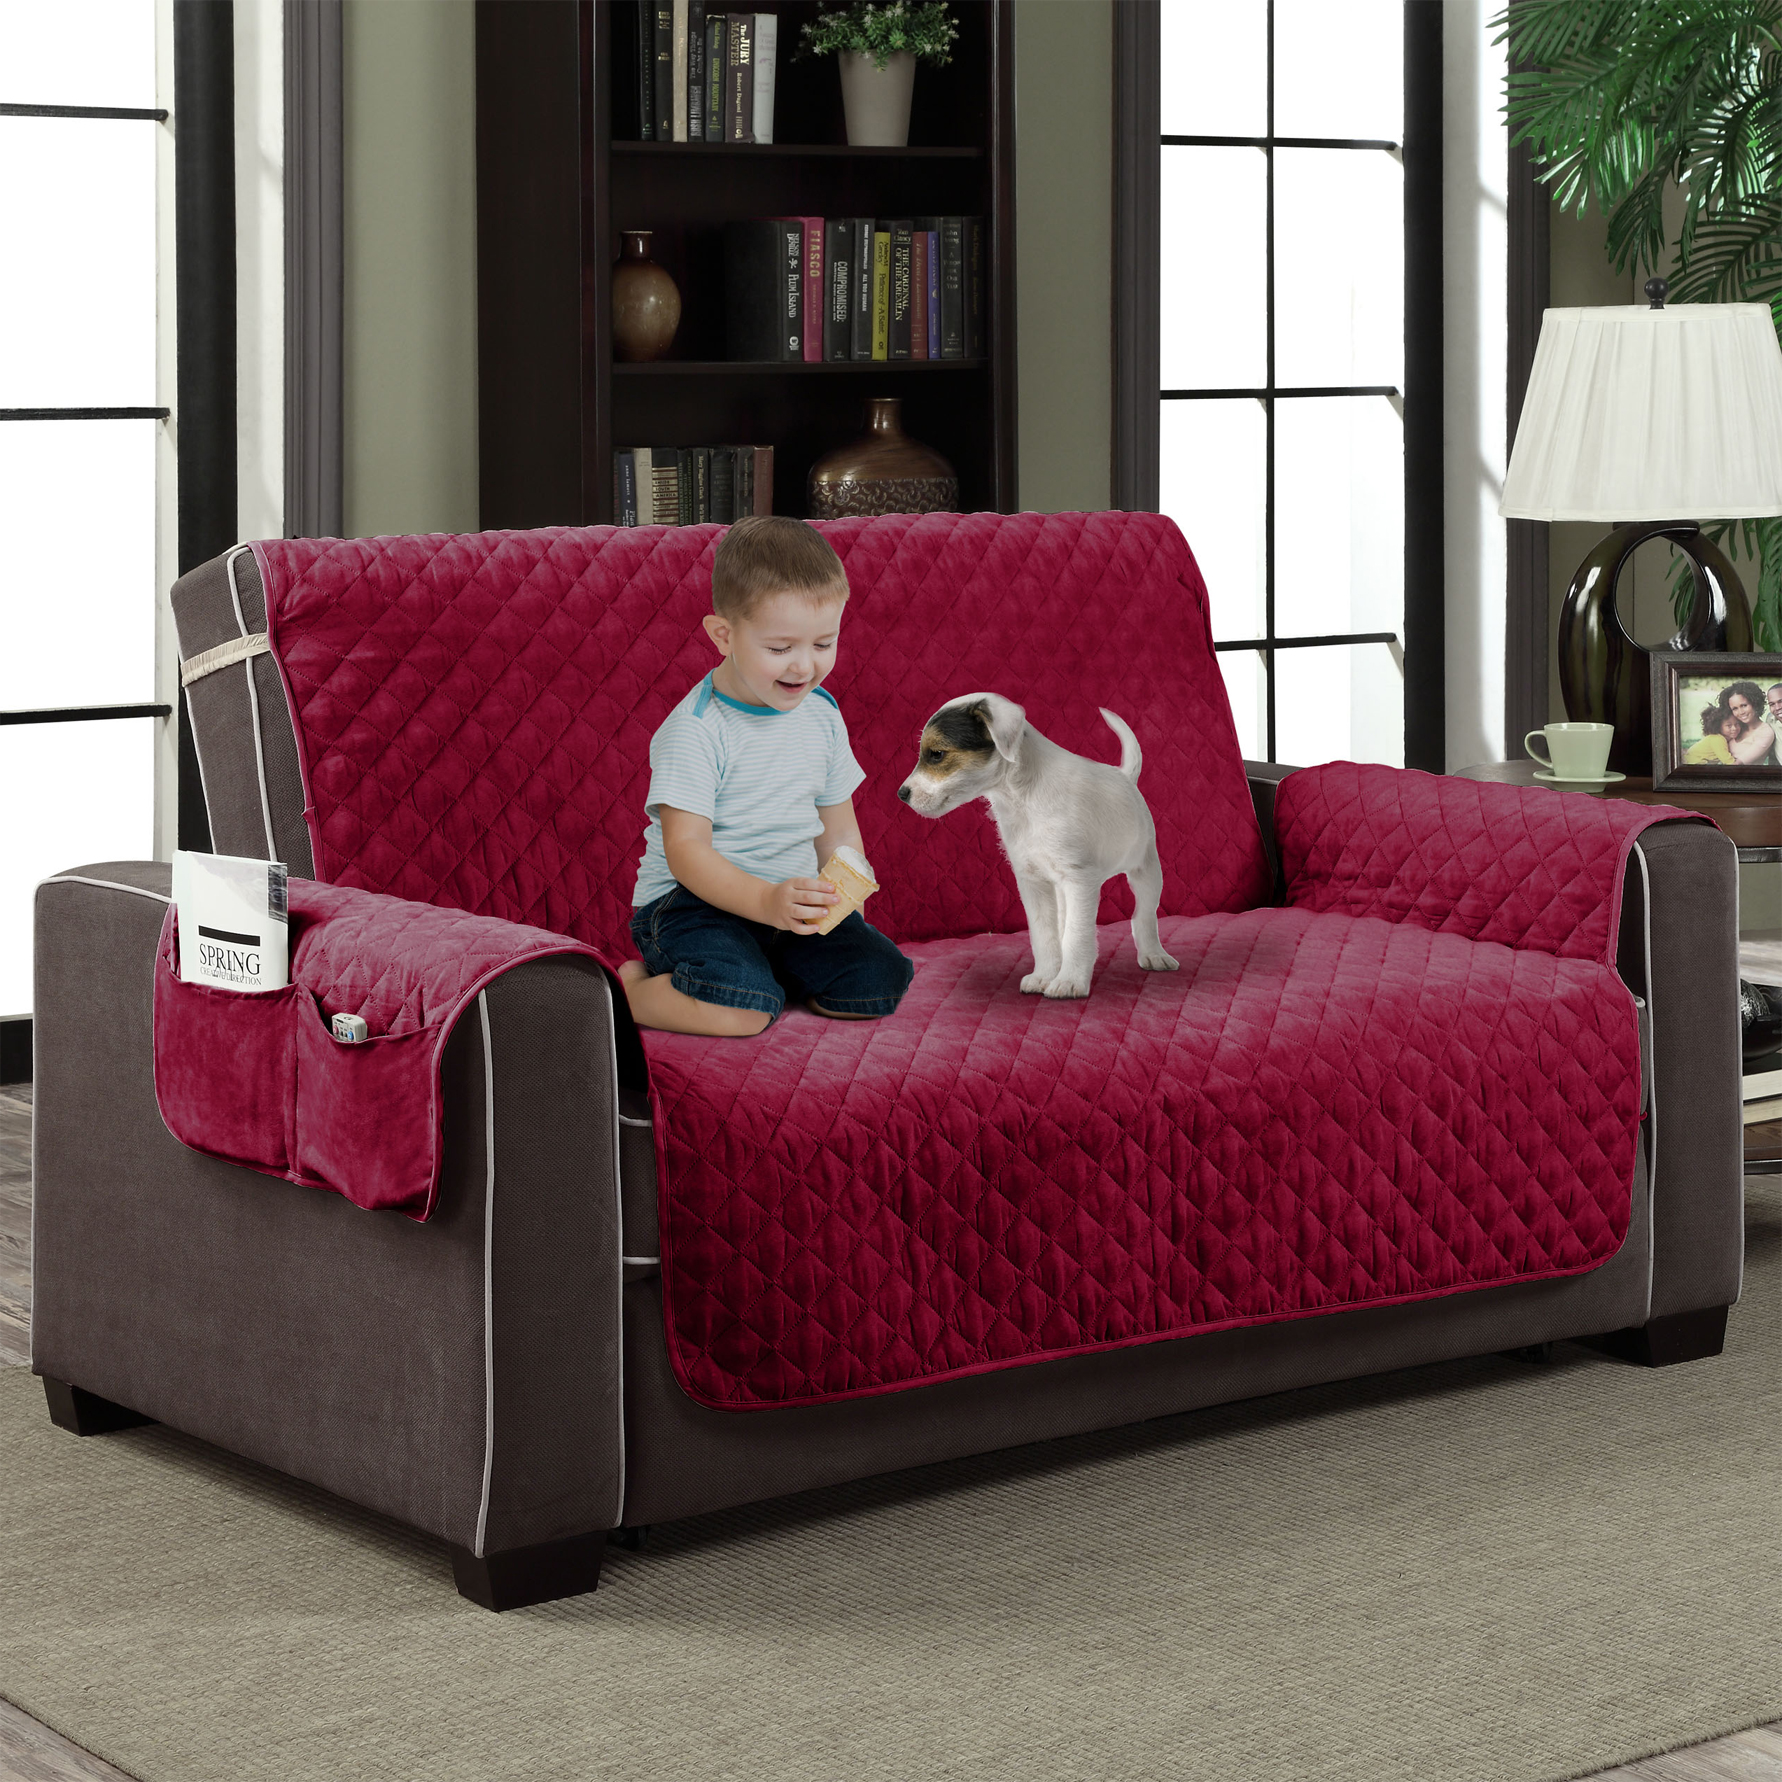 Quilted Microfiber Pet Dog Cat Couch Slipcover Furniture Protector Diamond